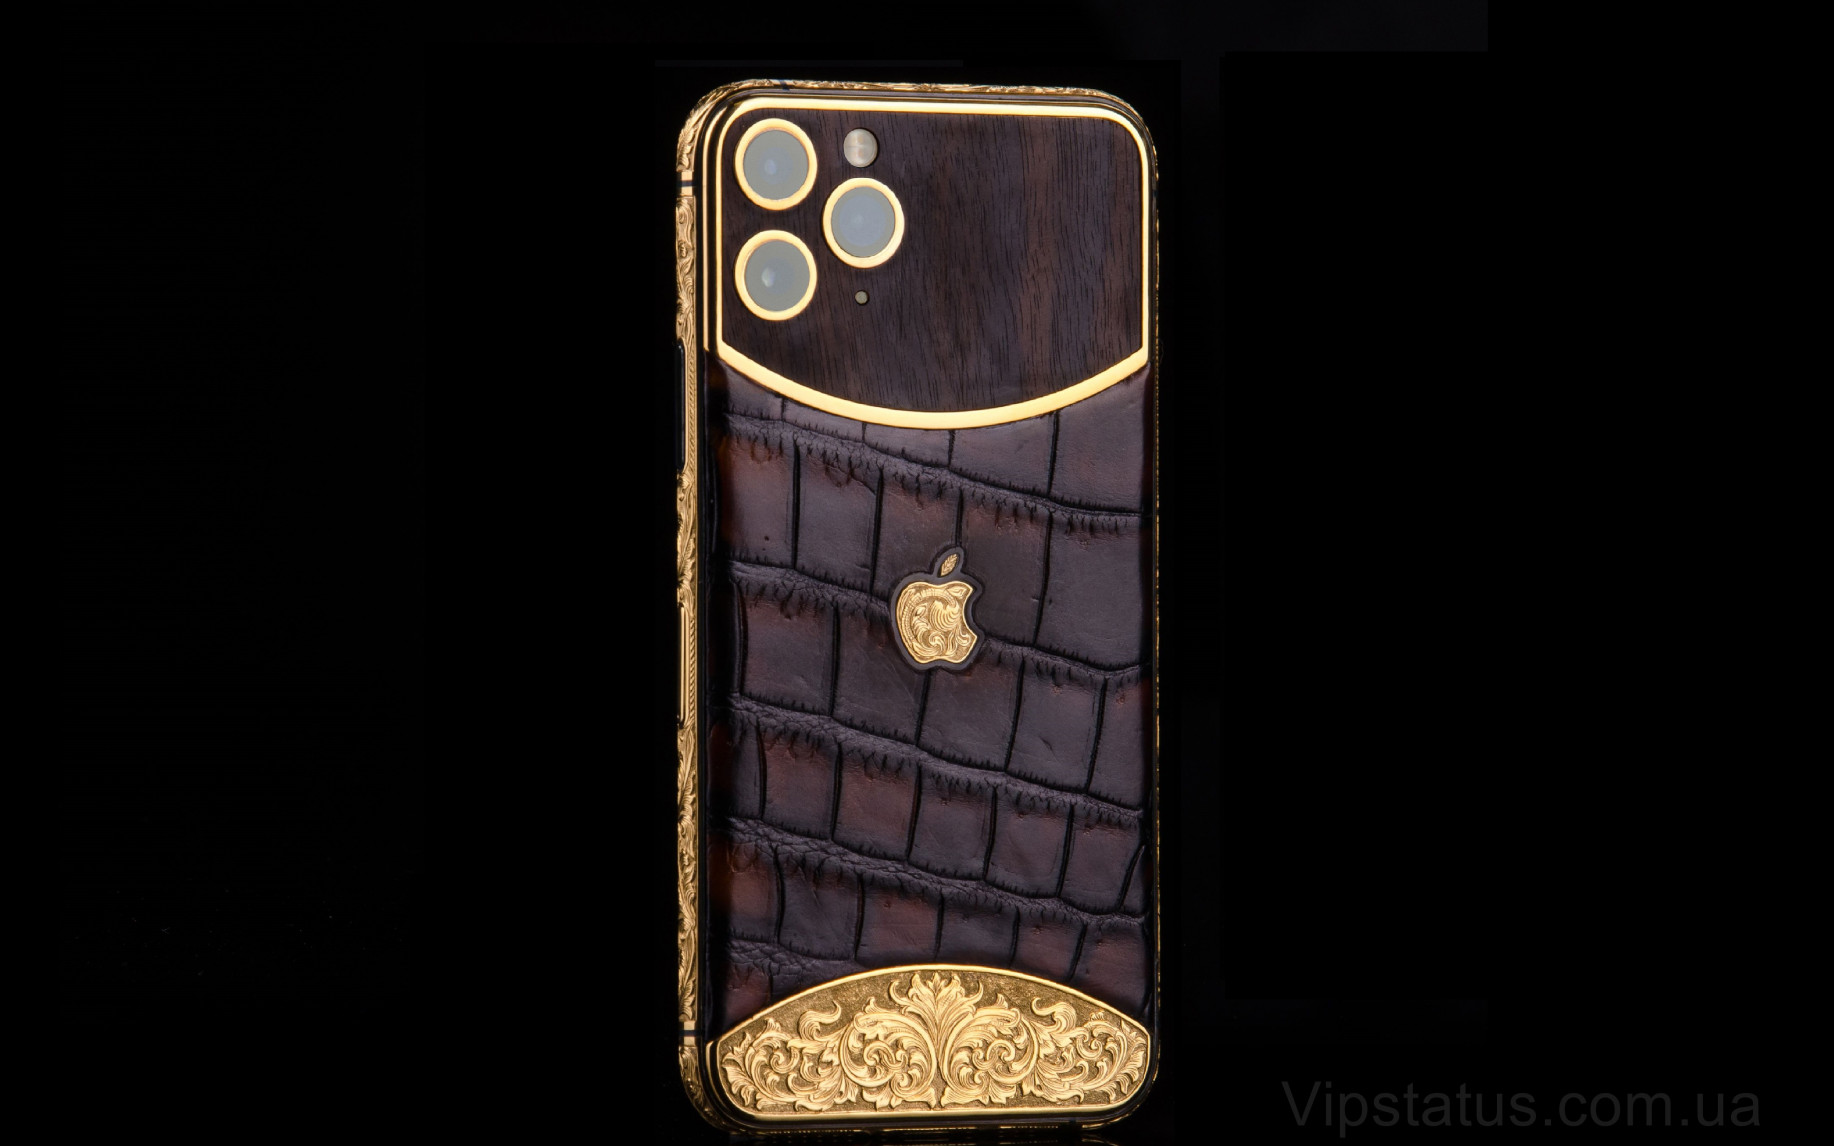 Elite Brown Edition IPHONE 11 PRO MAX 512 GB Brown Edition IPHONE 11 PRO MAX 512 GB image 1